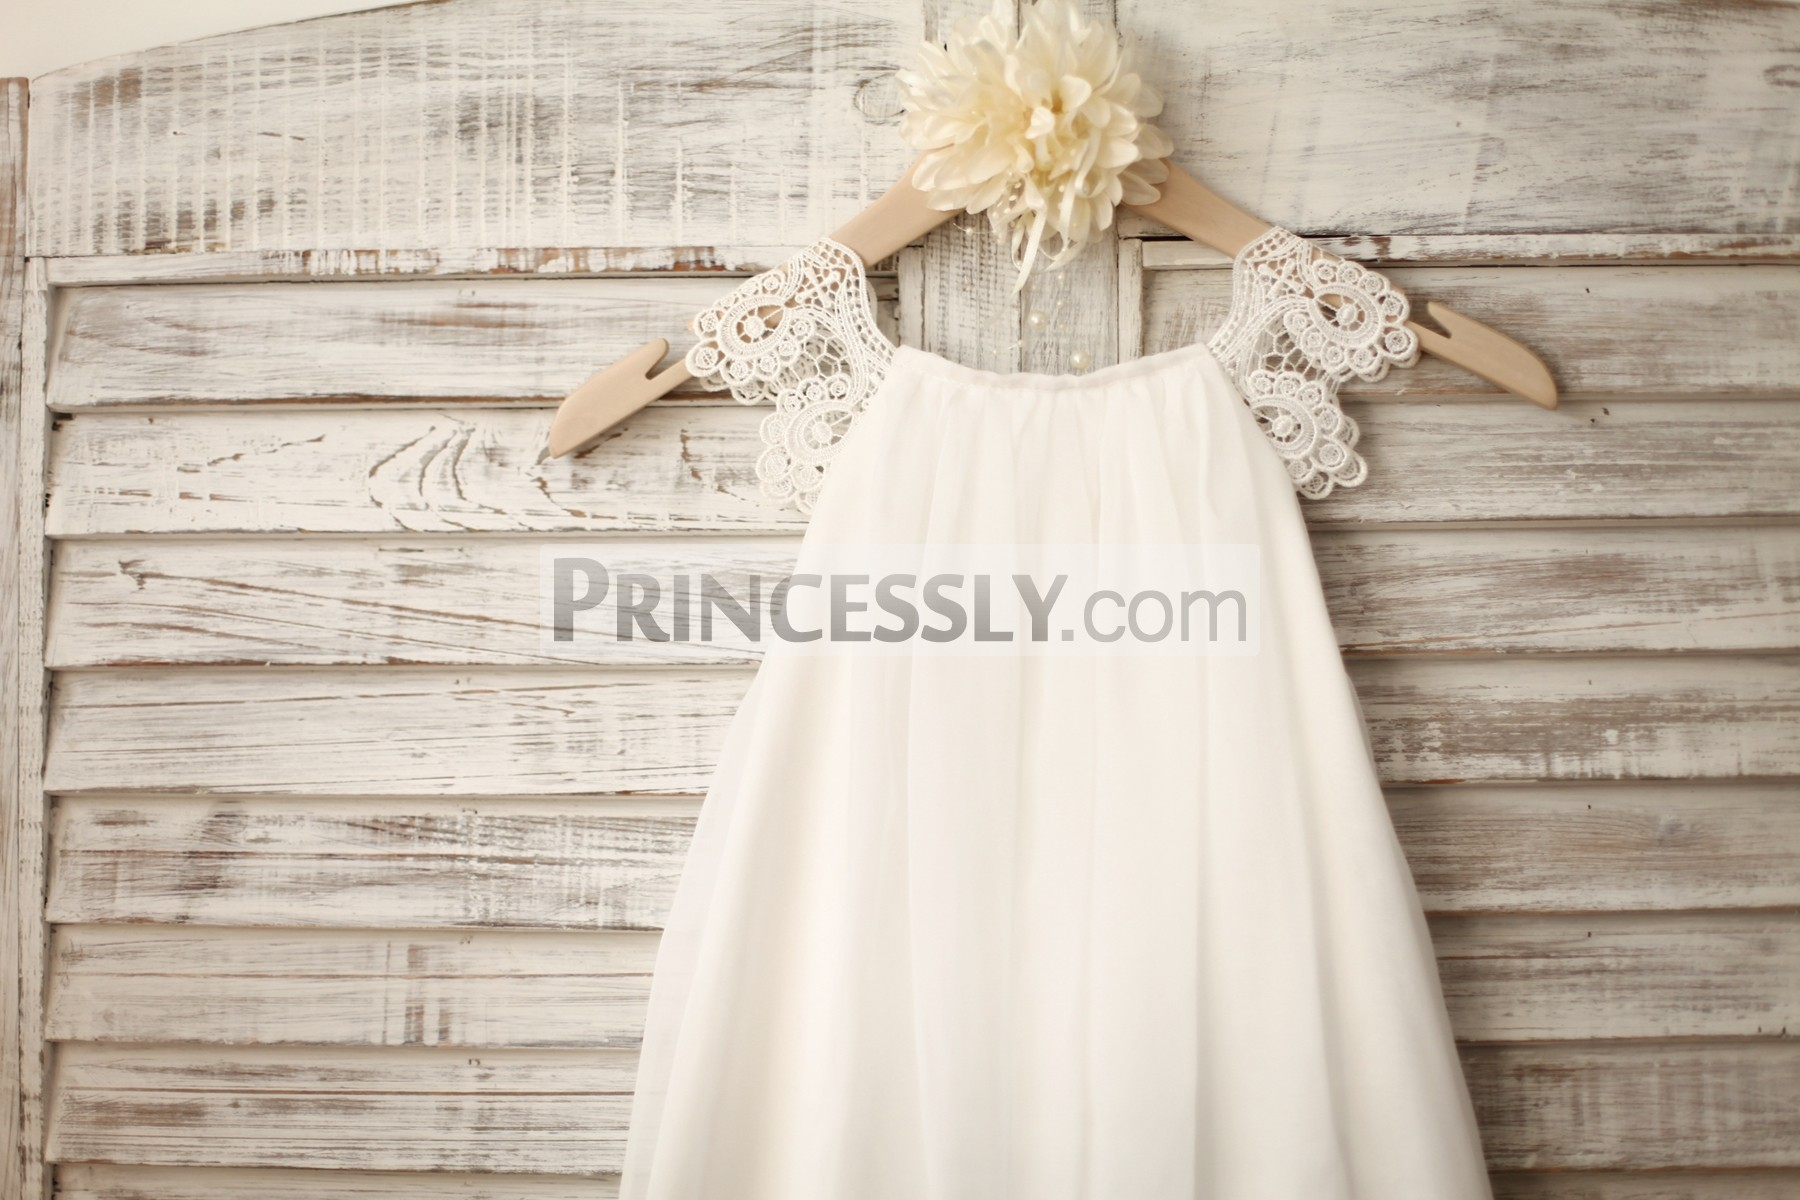 8d18023ccf9 ... ivory chiffon flower girl dress. Bohemian beach wedding little girl  dress with lace cap sleeves. Crochet lace scalloped cap sleeves